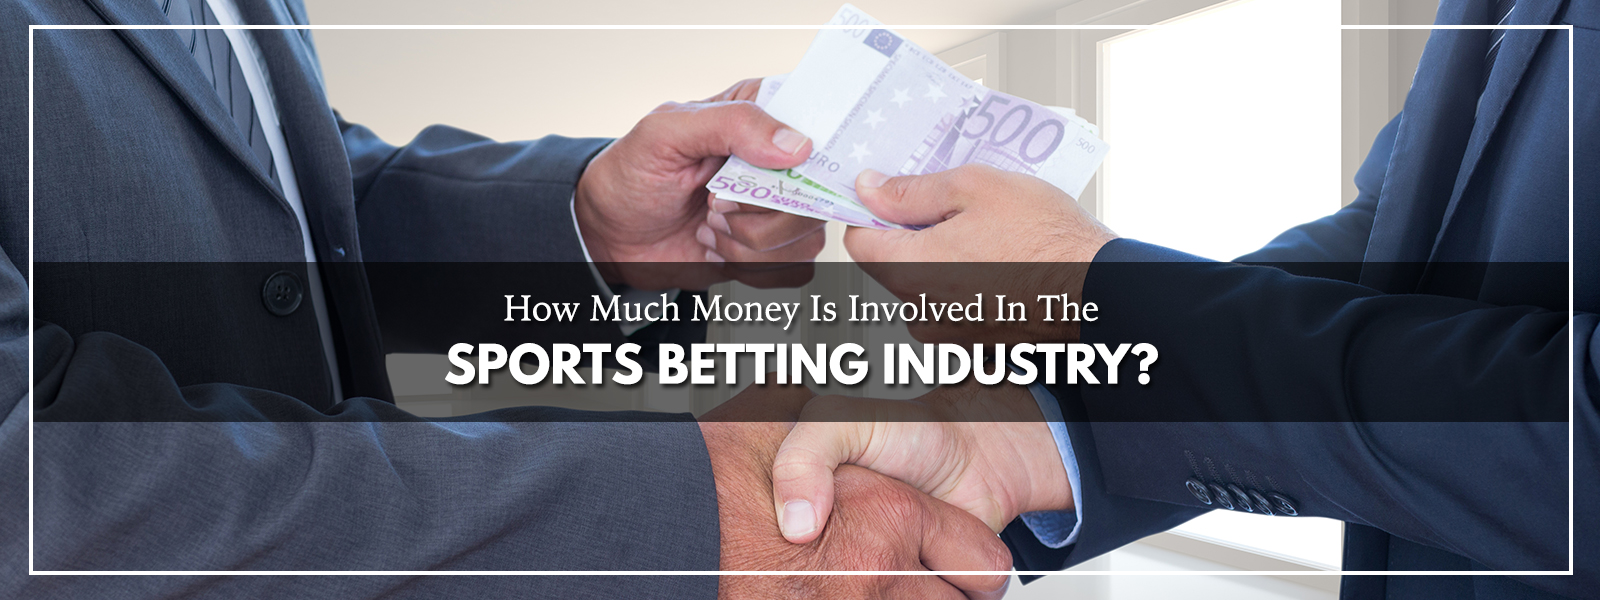 How Much Money Is Involved In The Sports Betting Industry?